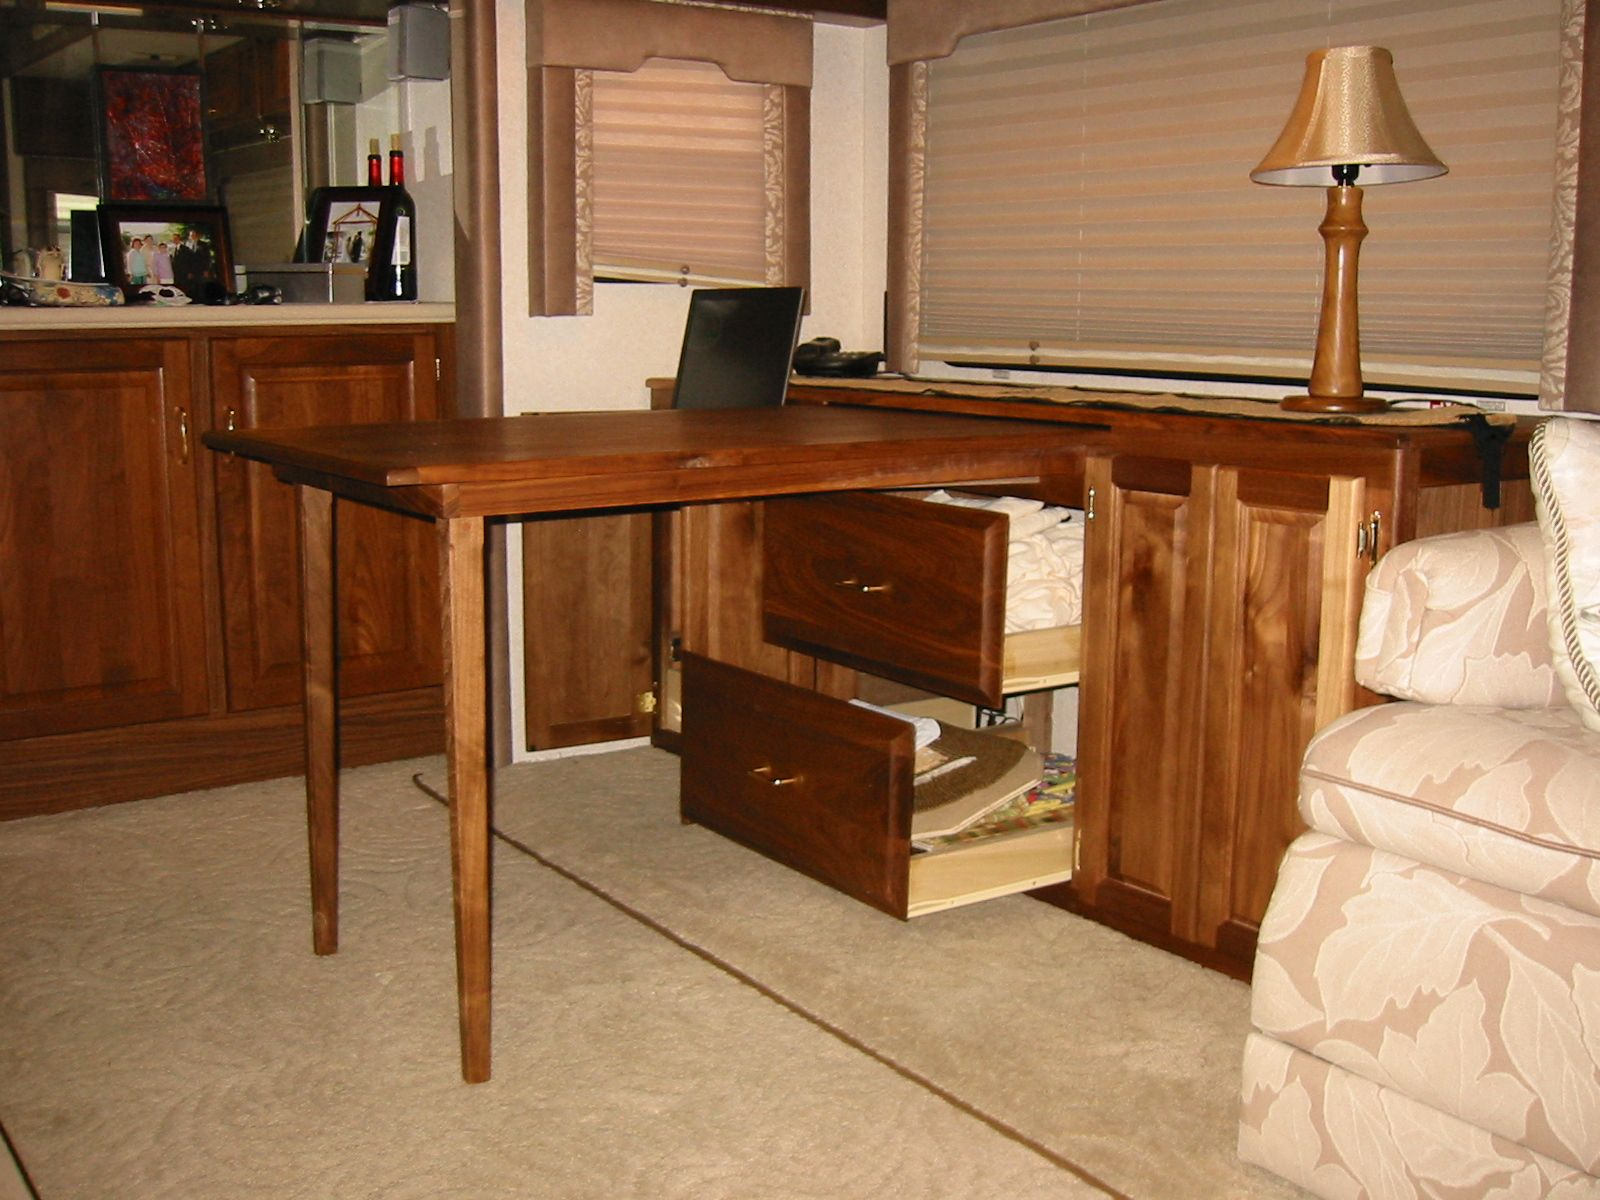 camping world rv sofas extra large fabric corner desk table solution irv2 forums living pinterest